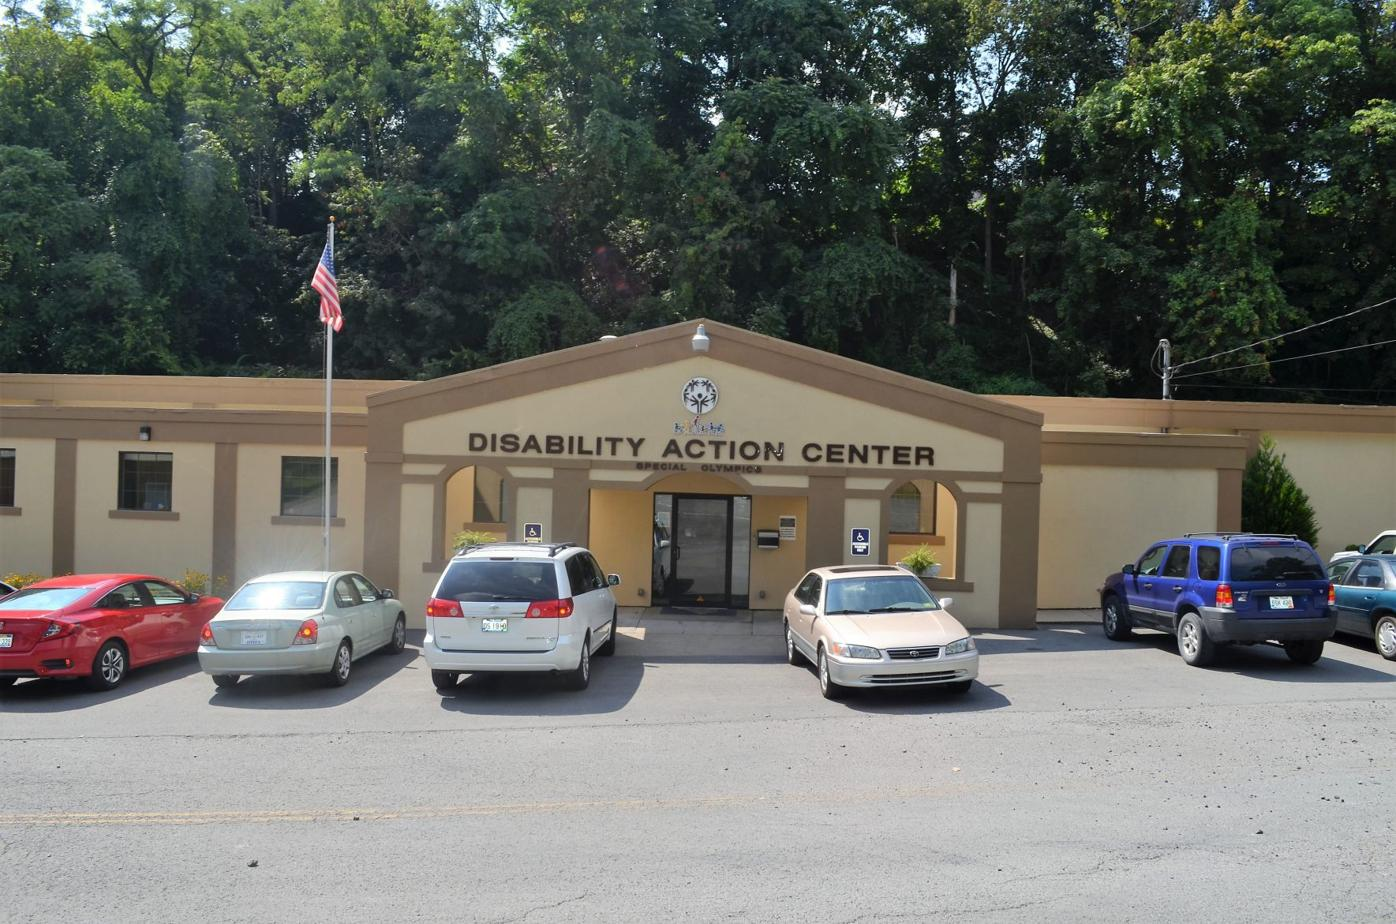 Marion County Disability Action Center